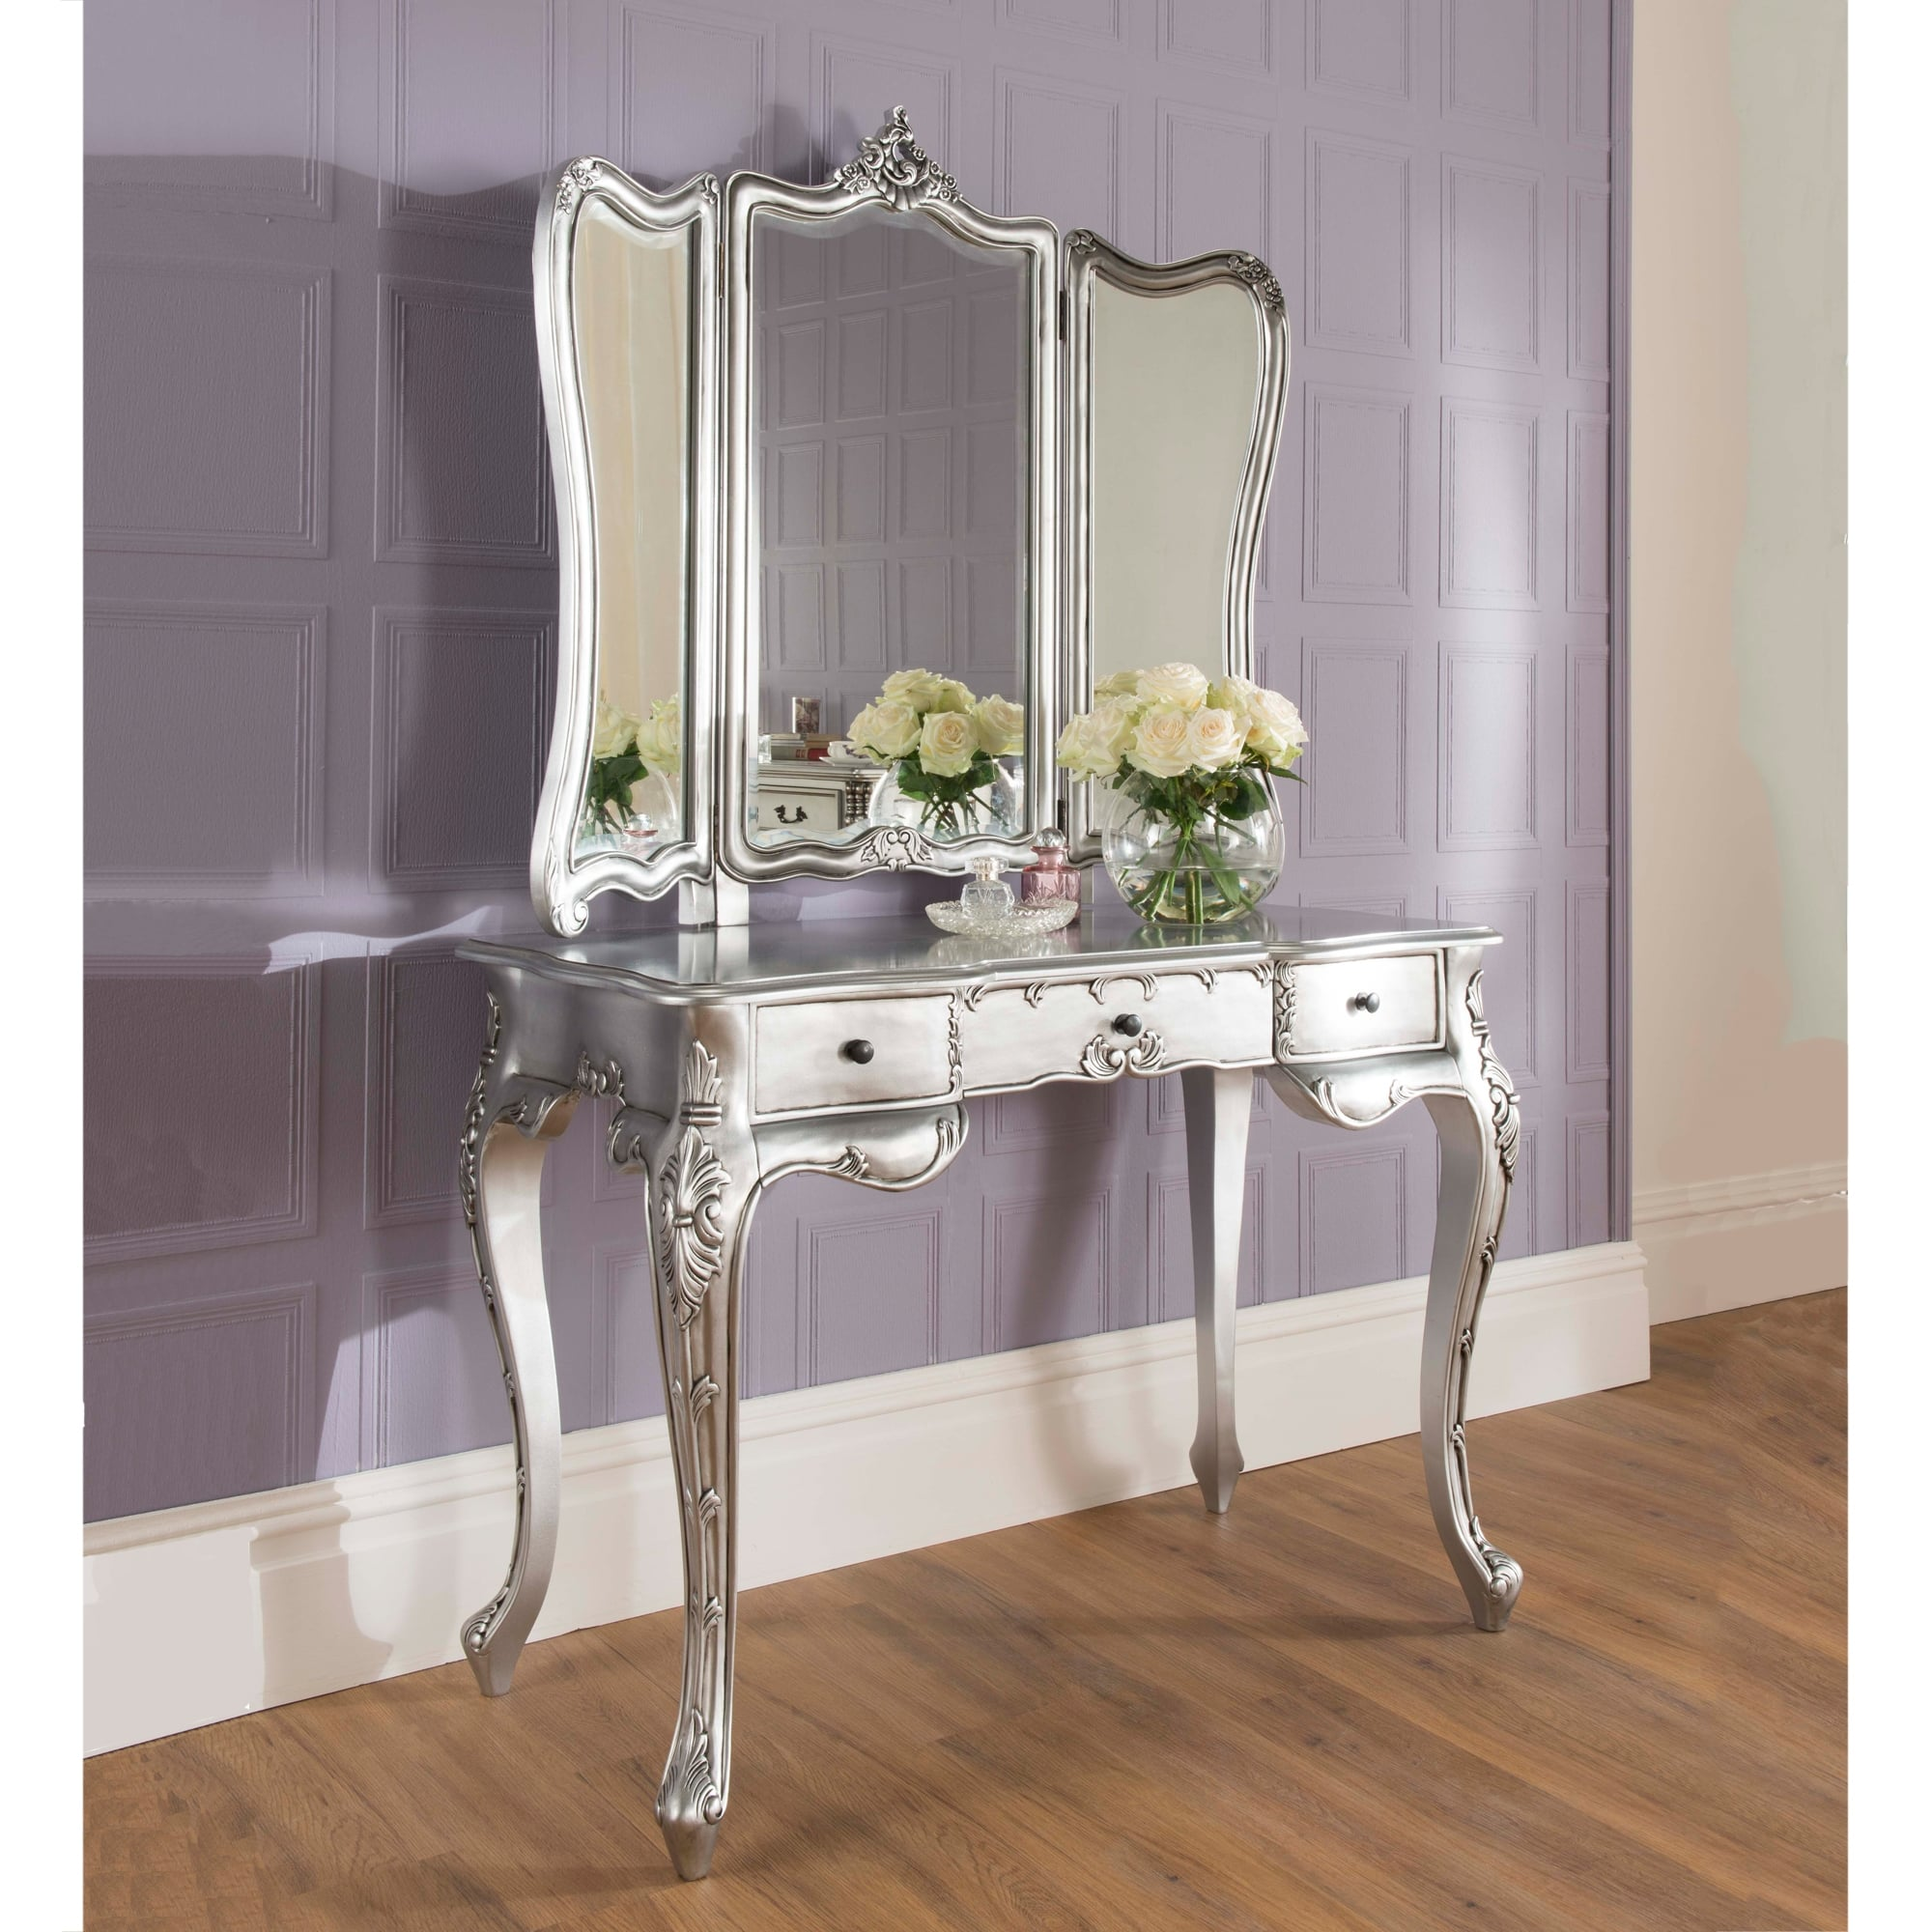 La rochelle silver antique french dressing table works well alongside our shabby chic furniture - La table basque la rochelle ...